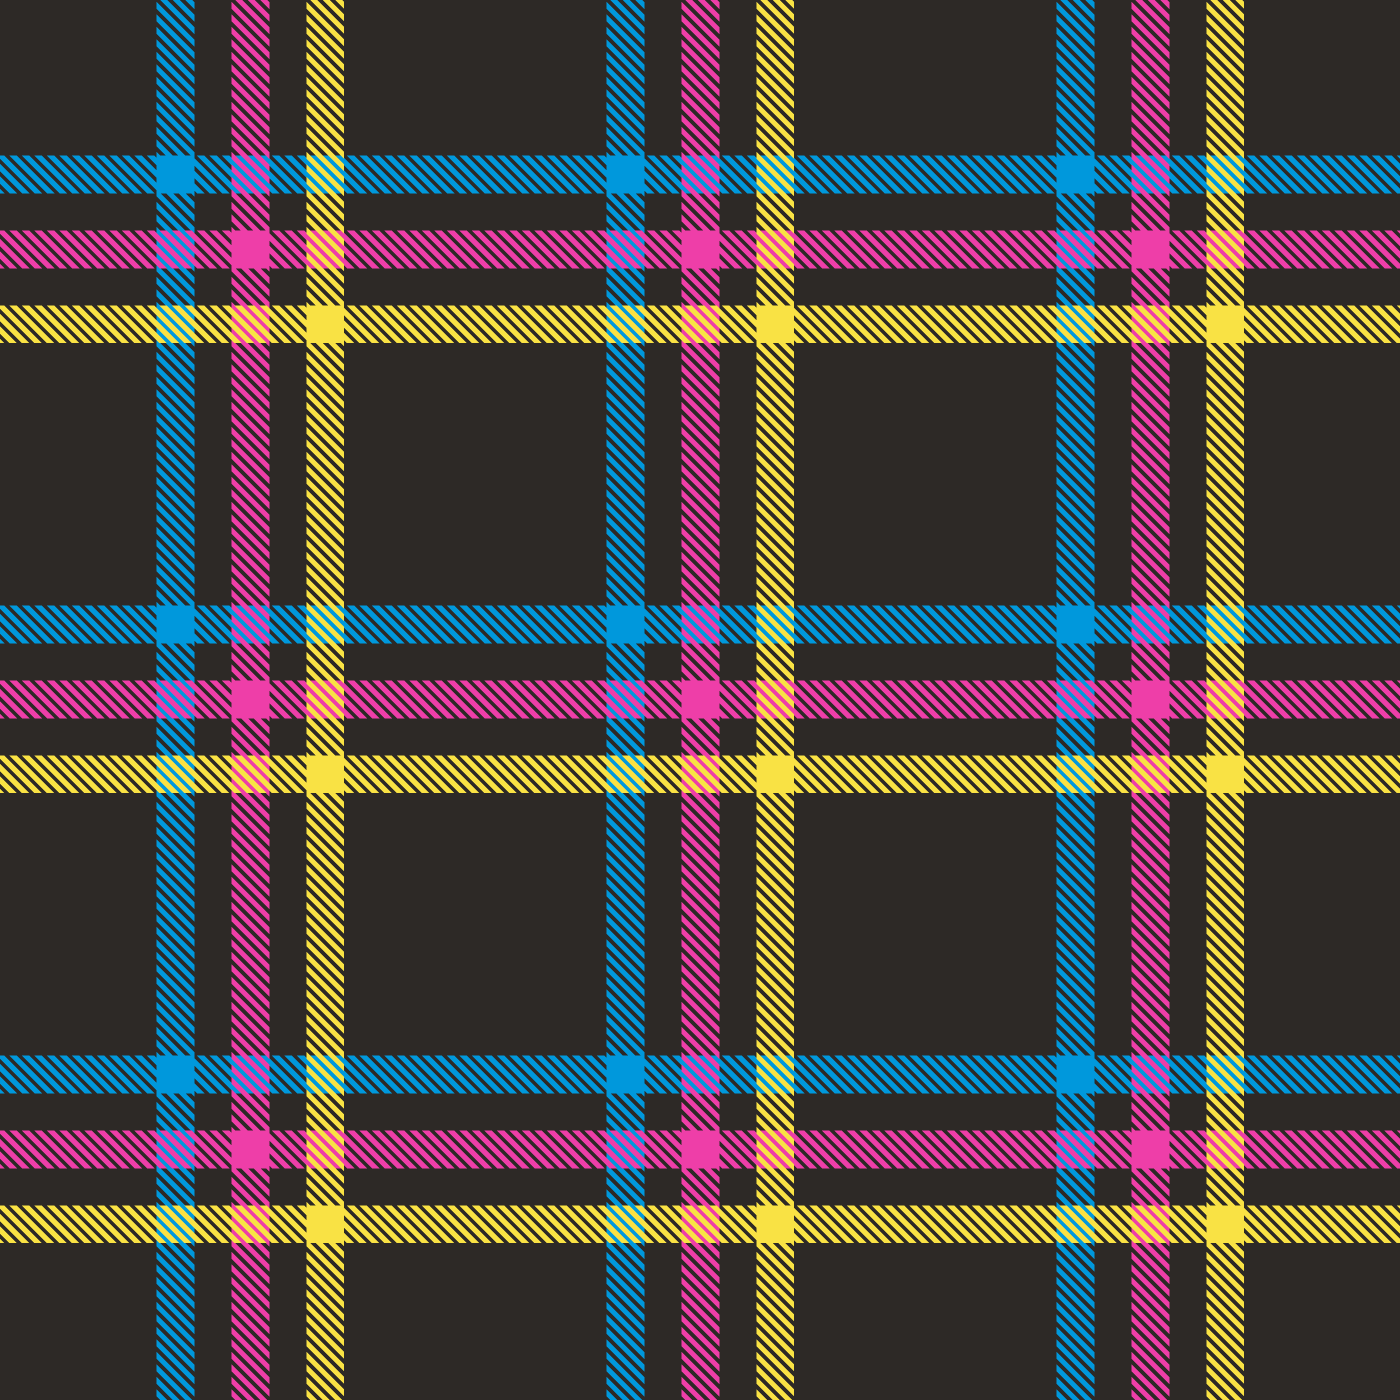 Each piece is connected through the theme of print: both through production and aesthetics. To continue the punk motif, I designed a plaid tile that could be repeated on fabric. The process to build this pattern is boiled down to making thin diagonal shapes to fill the vertical and horizontal stripes and then aligning said stripes so that they line up and repeat properly as a tile.